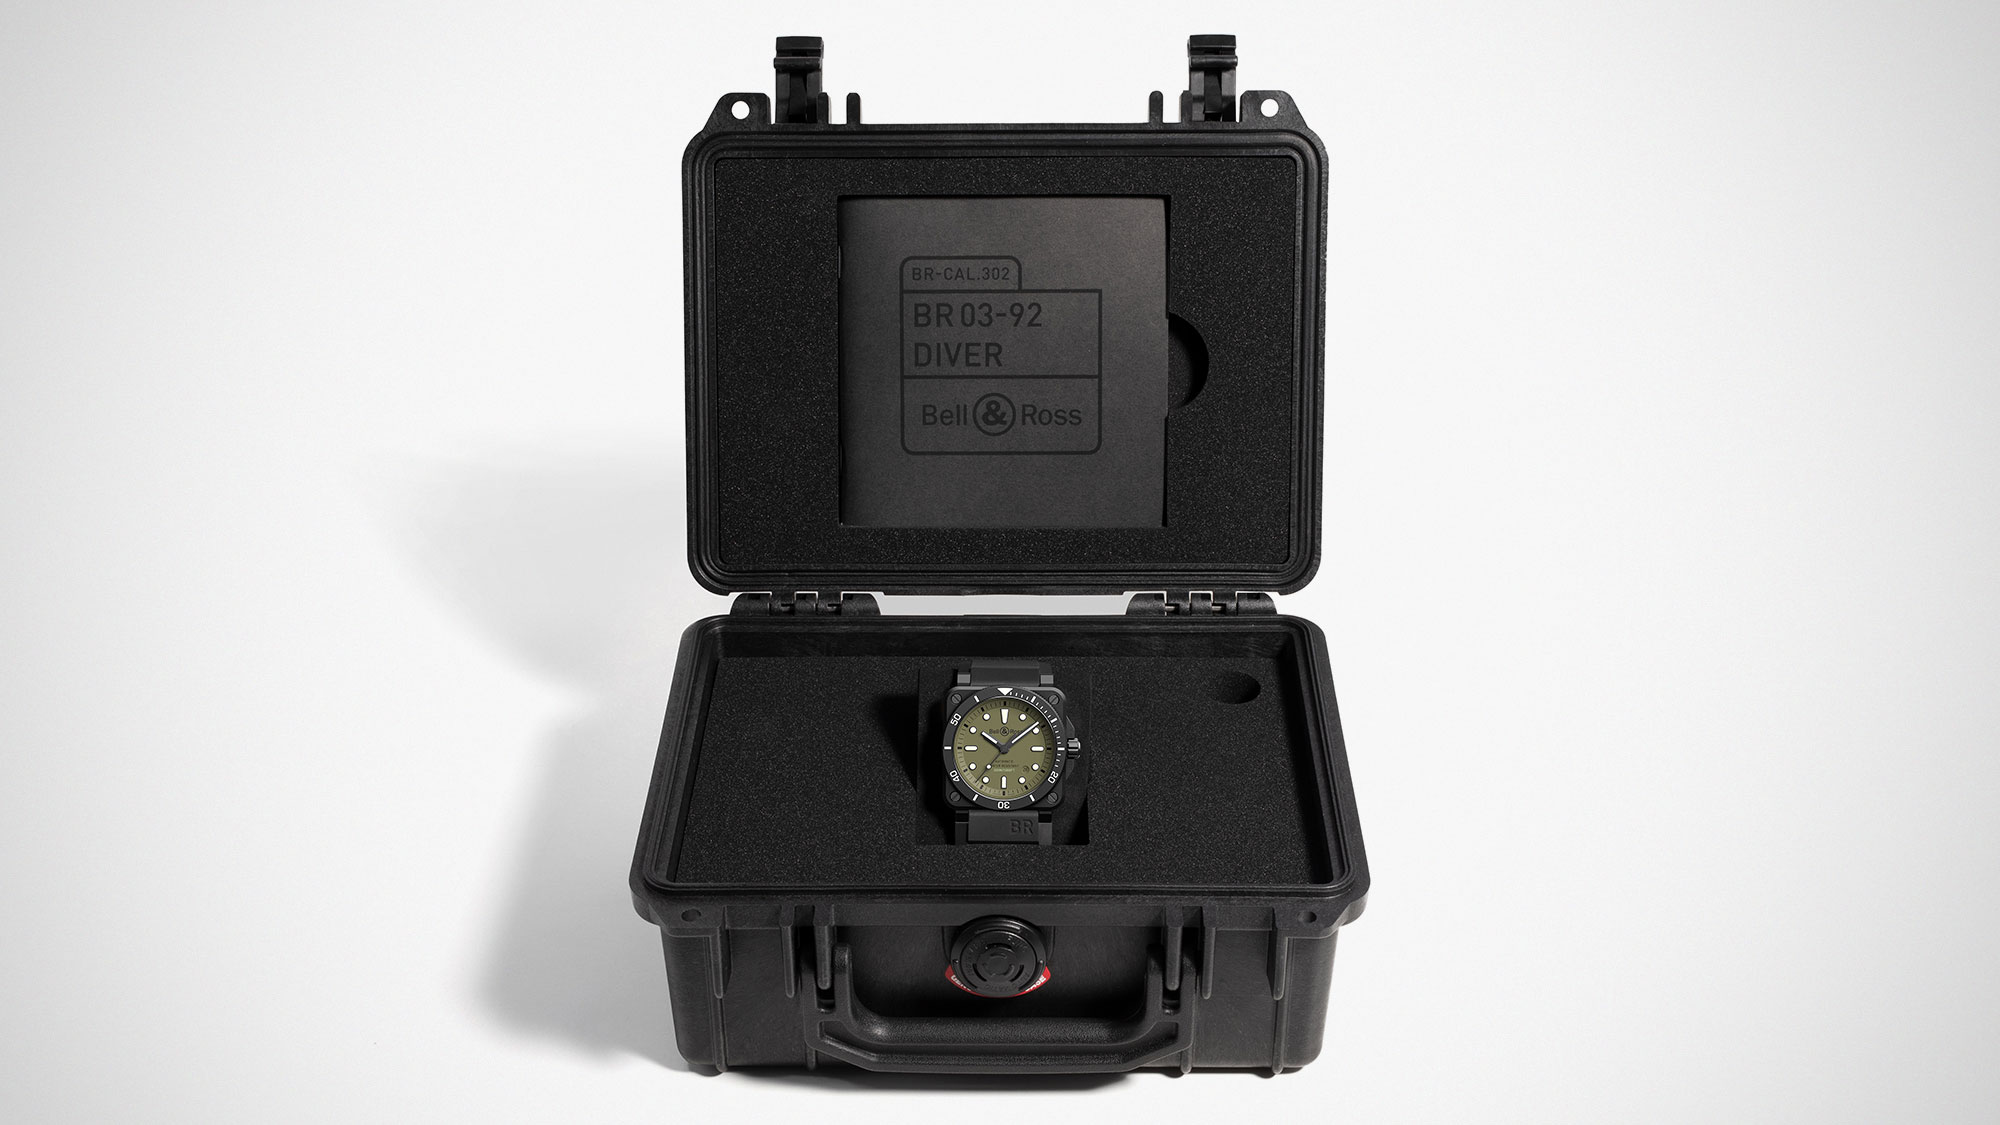 Bell & Ross BR 03-92 Diver Military Watch